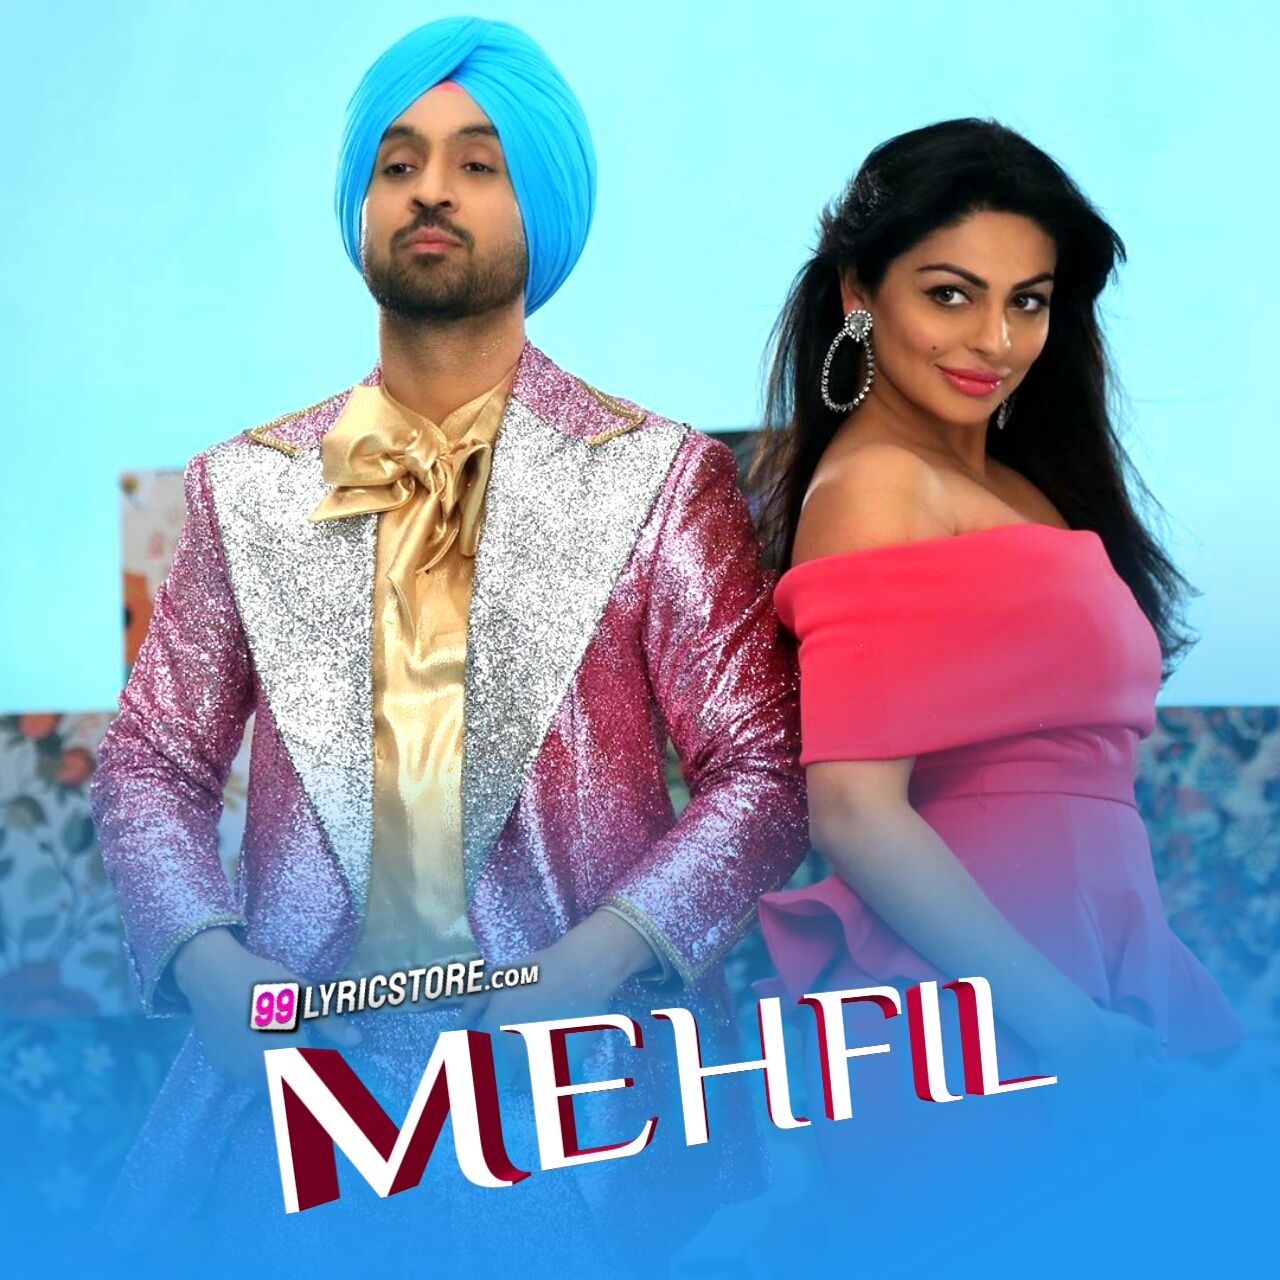 Mehfil Punjabi Song from movie Shadaa sung by Diljit Dosanjh